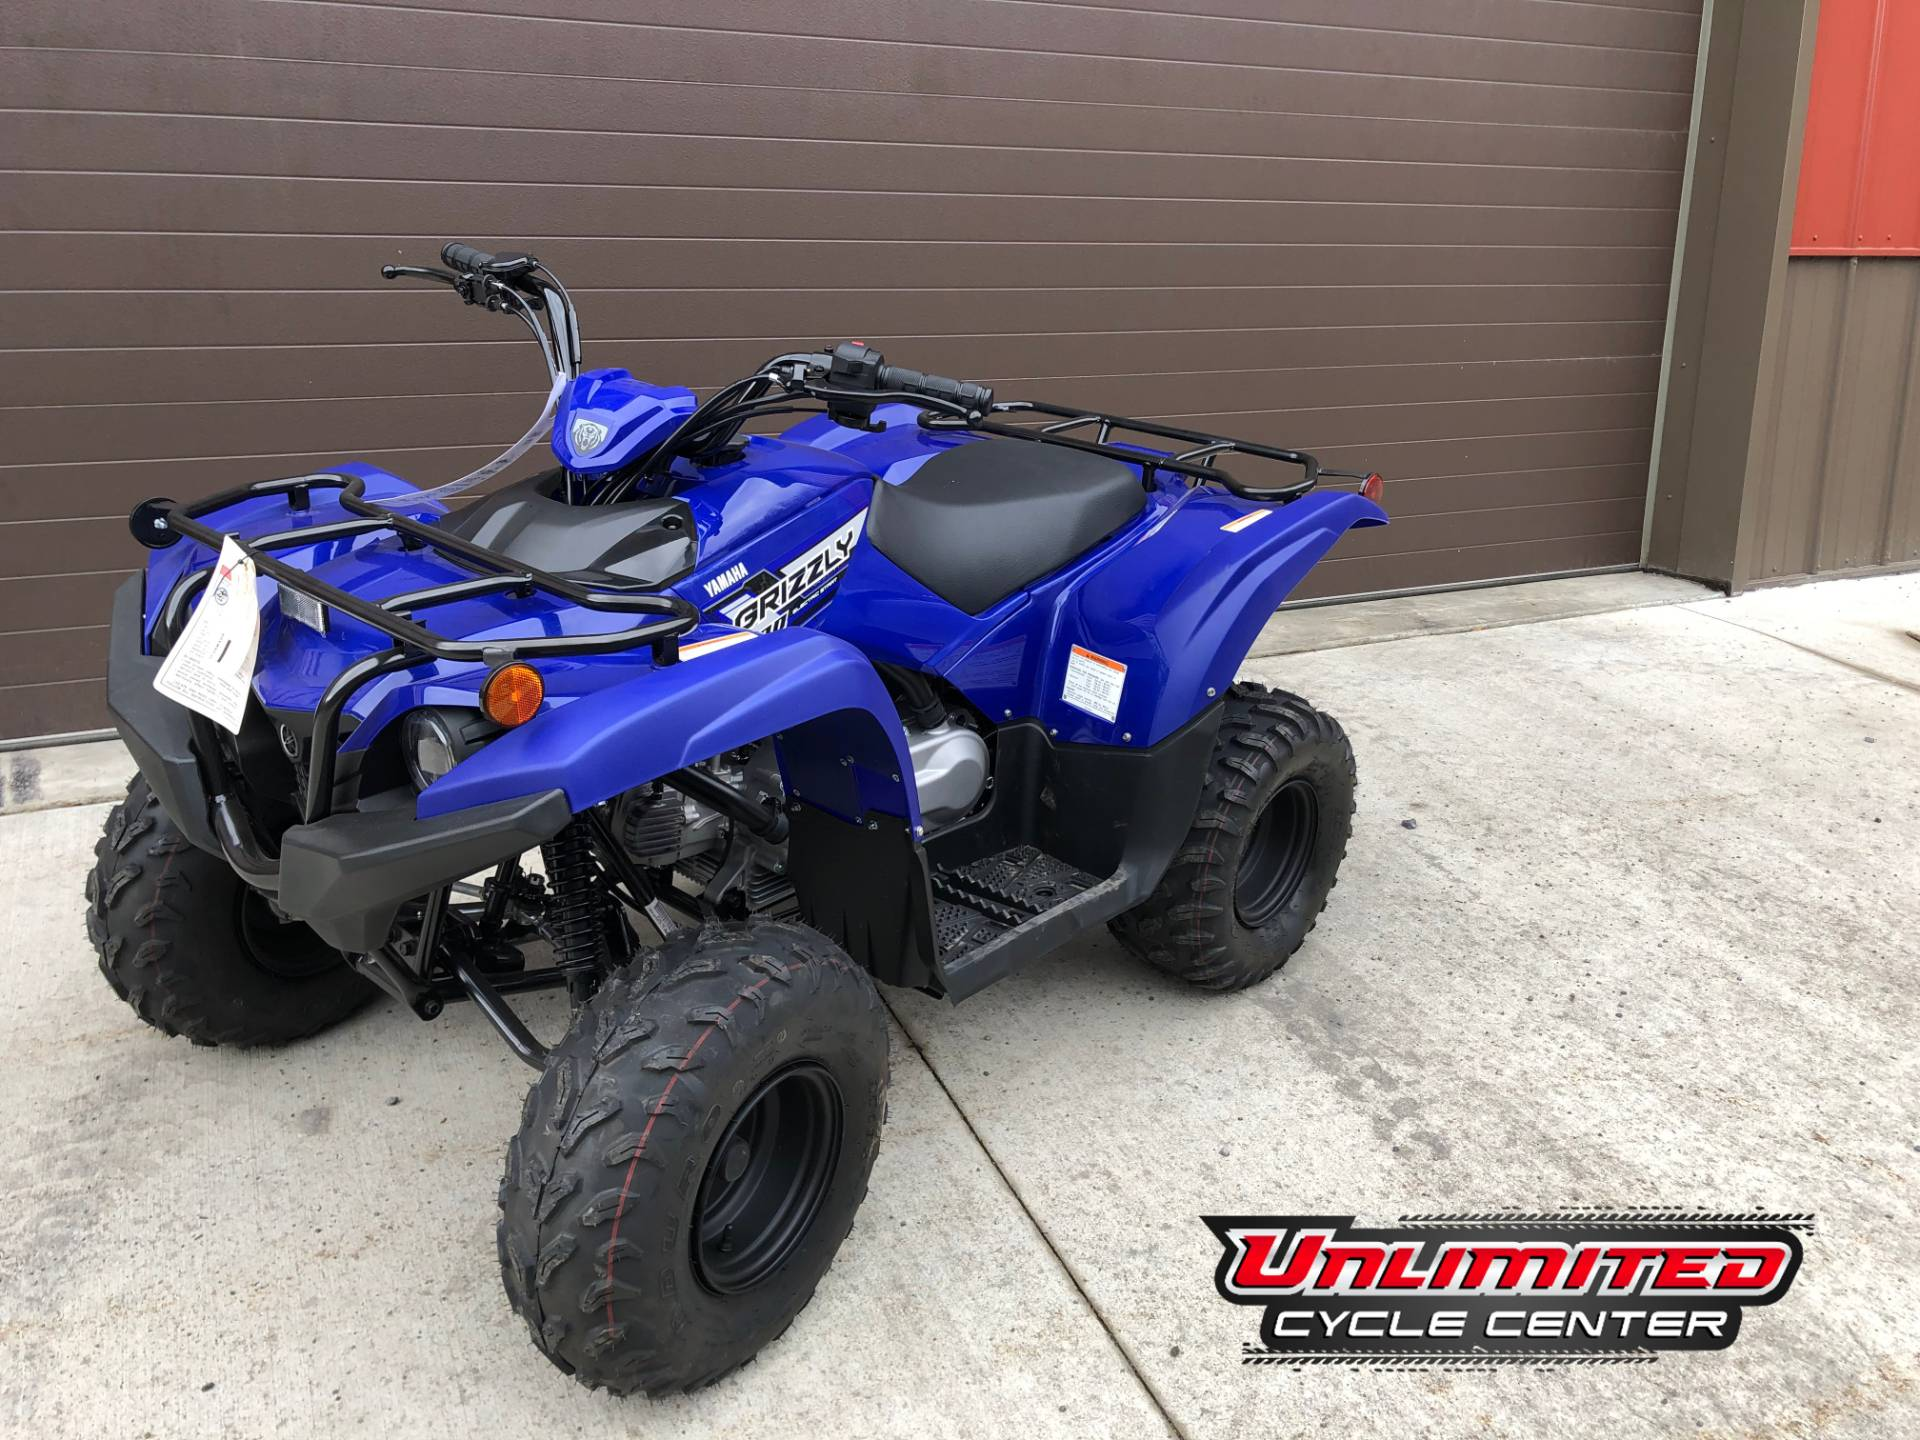 2019 Yamaha Grizzly 90 in Tyrone, Pennsylvania - Photo 1